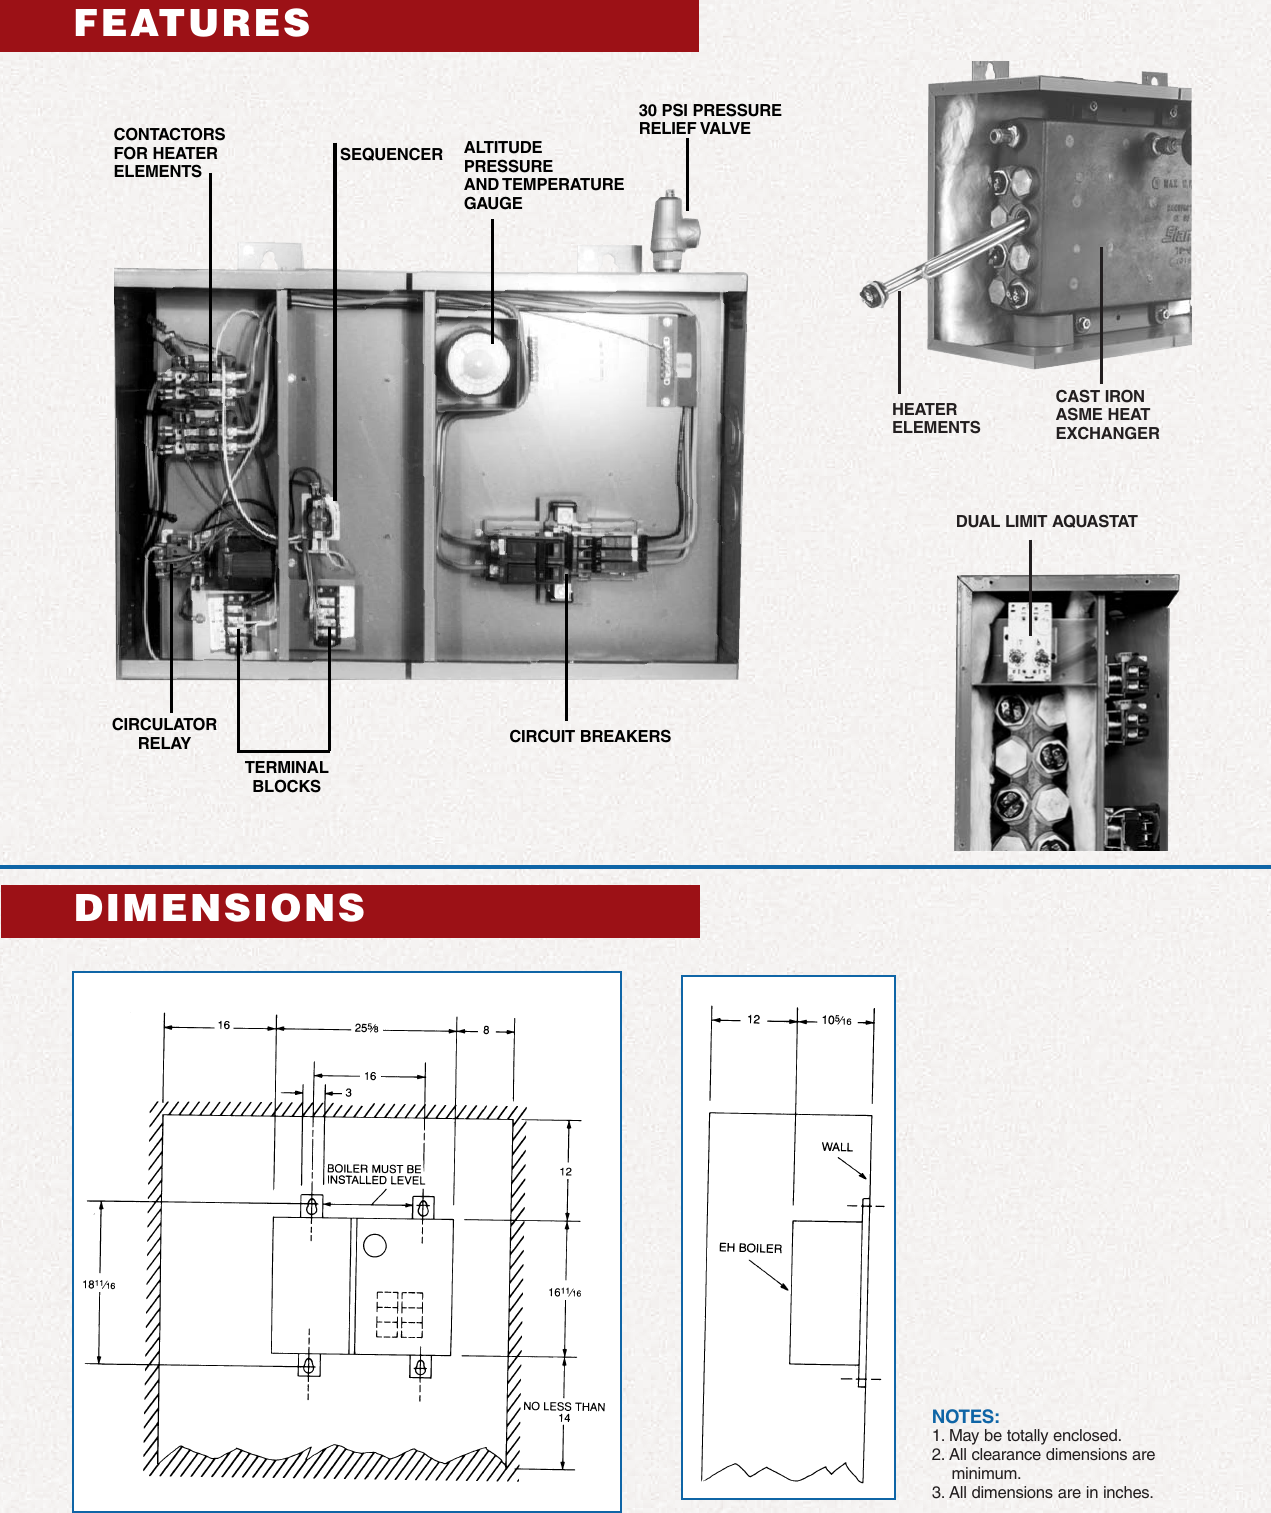 Zone Valve Wiring Diagram Slant Fin Worksheet And Taco 570 Monitron Eh Boilers Users Manual Rh Usermanual Wiki 3 Wire